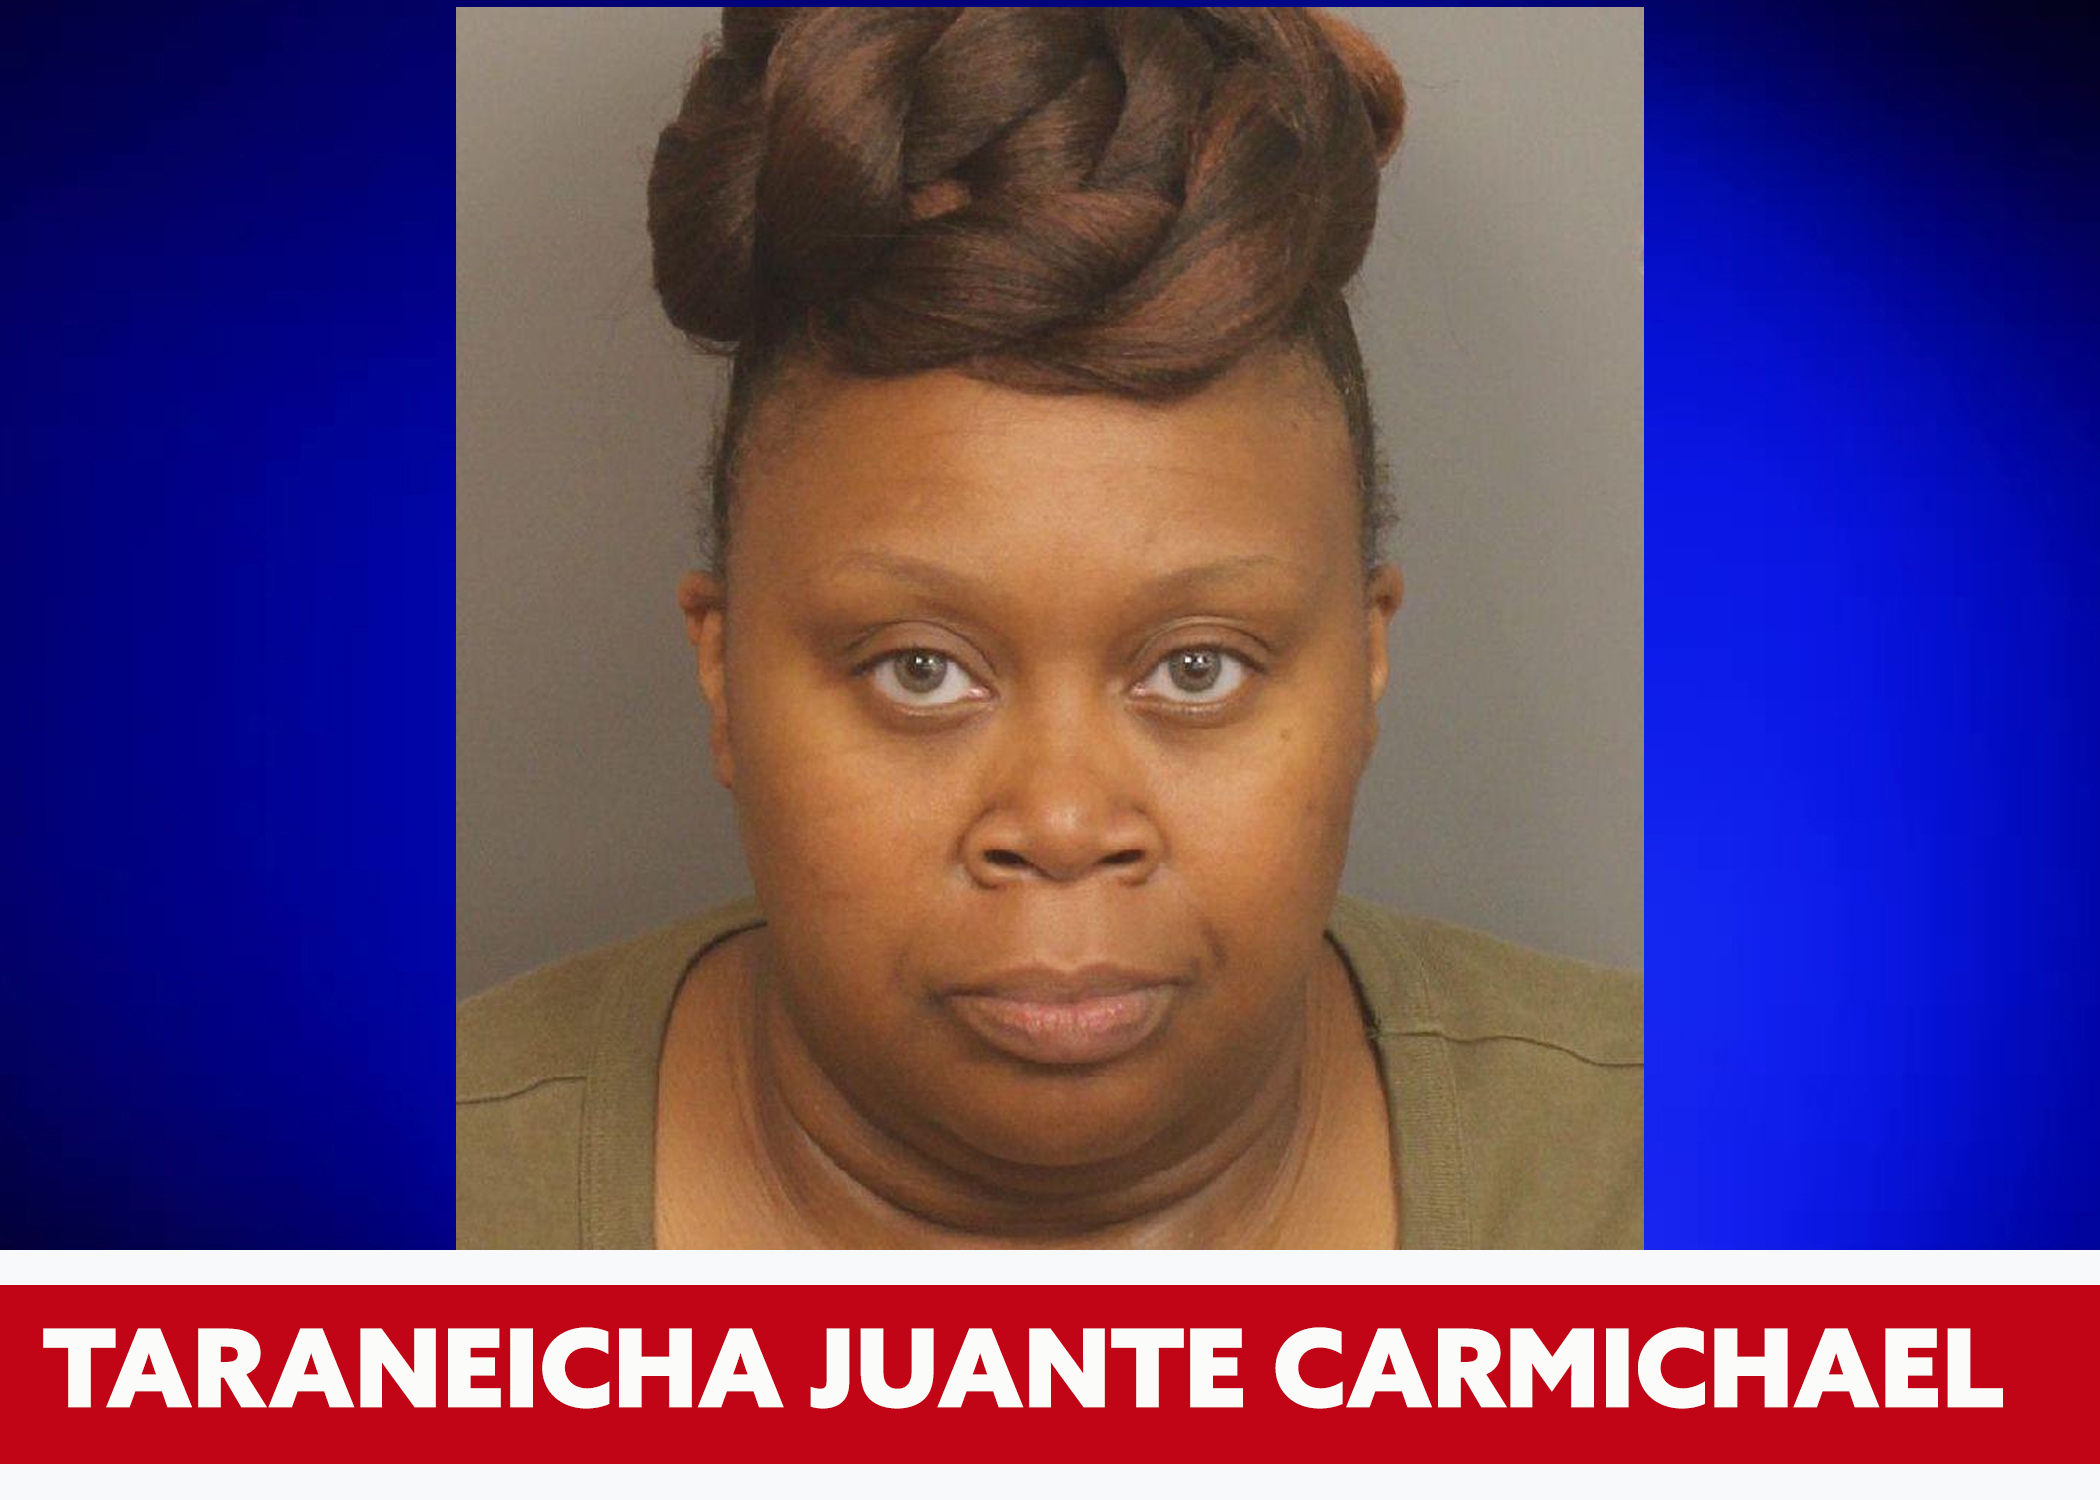 Jefferson County Court Clerk accused in theft of over $38K in cash payments